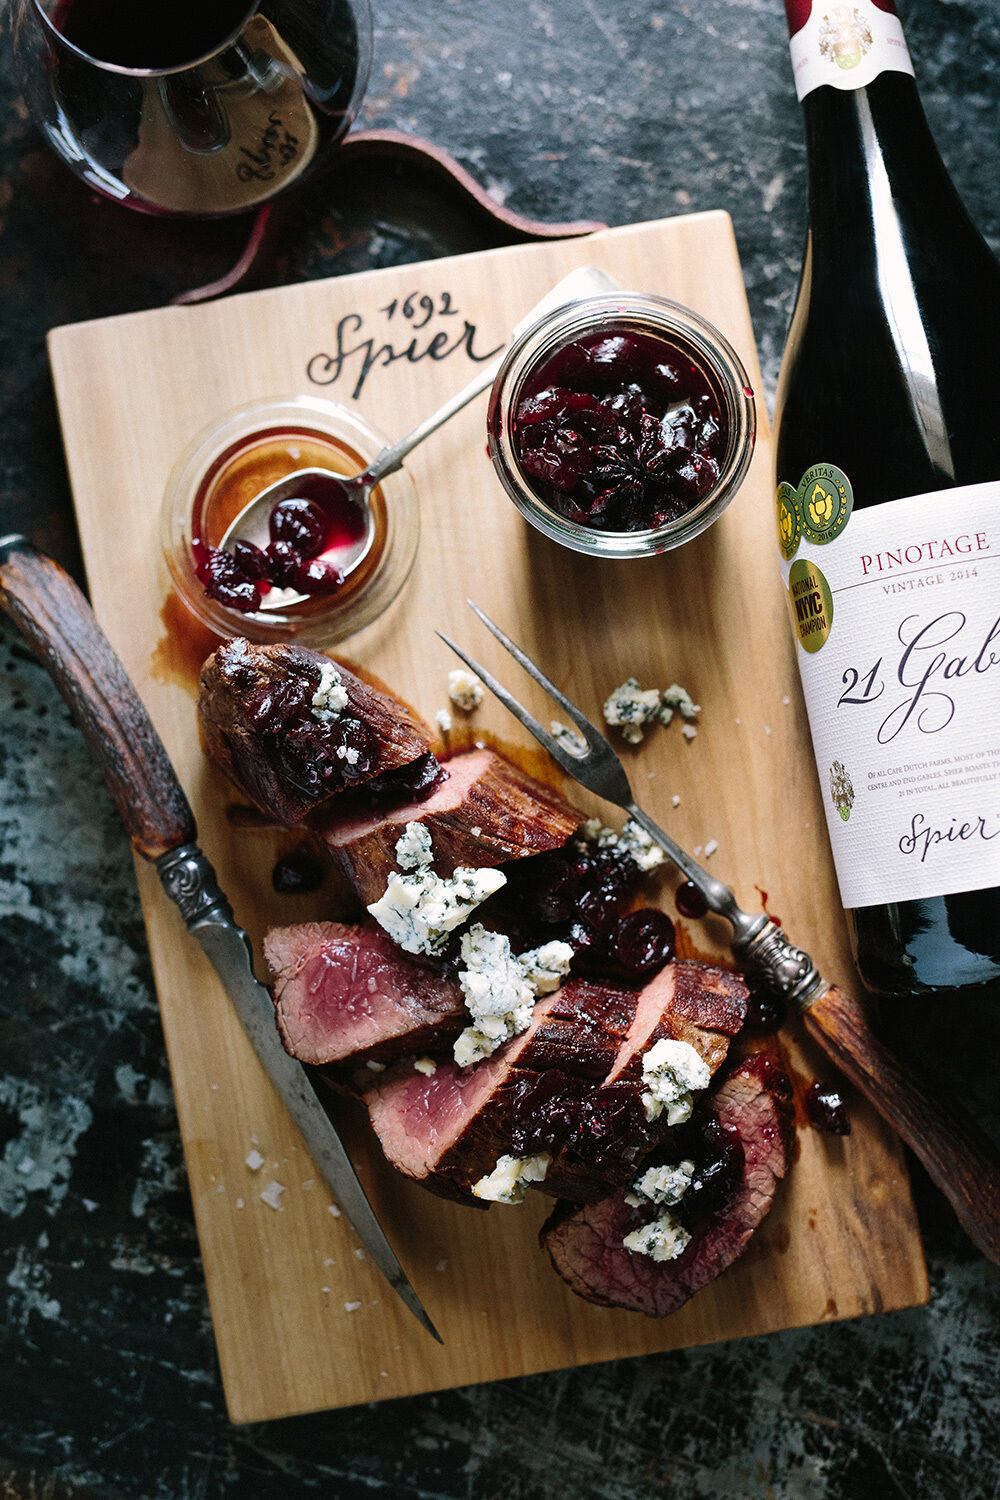 Ostrich steak with cranberry compote and blue cheese